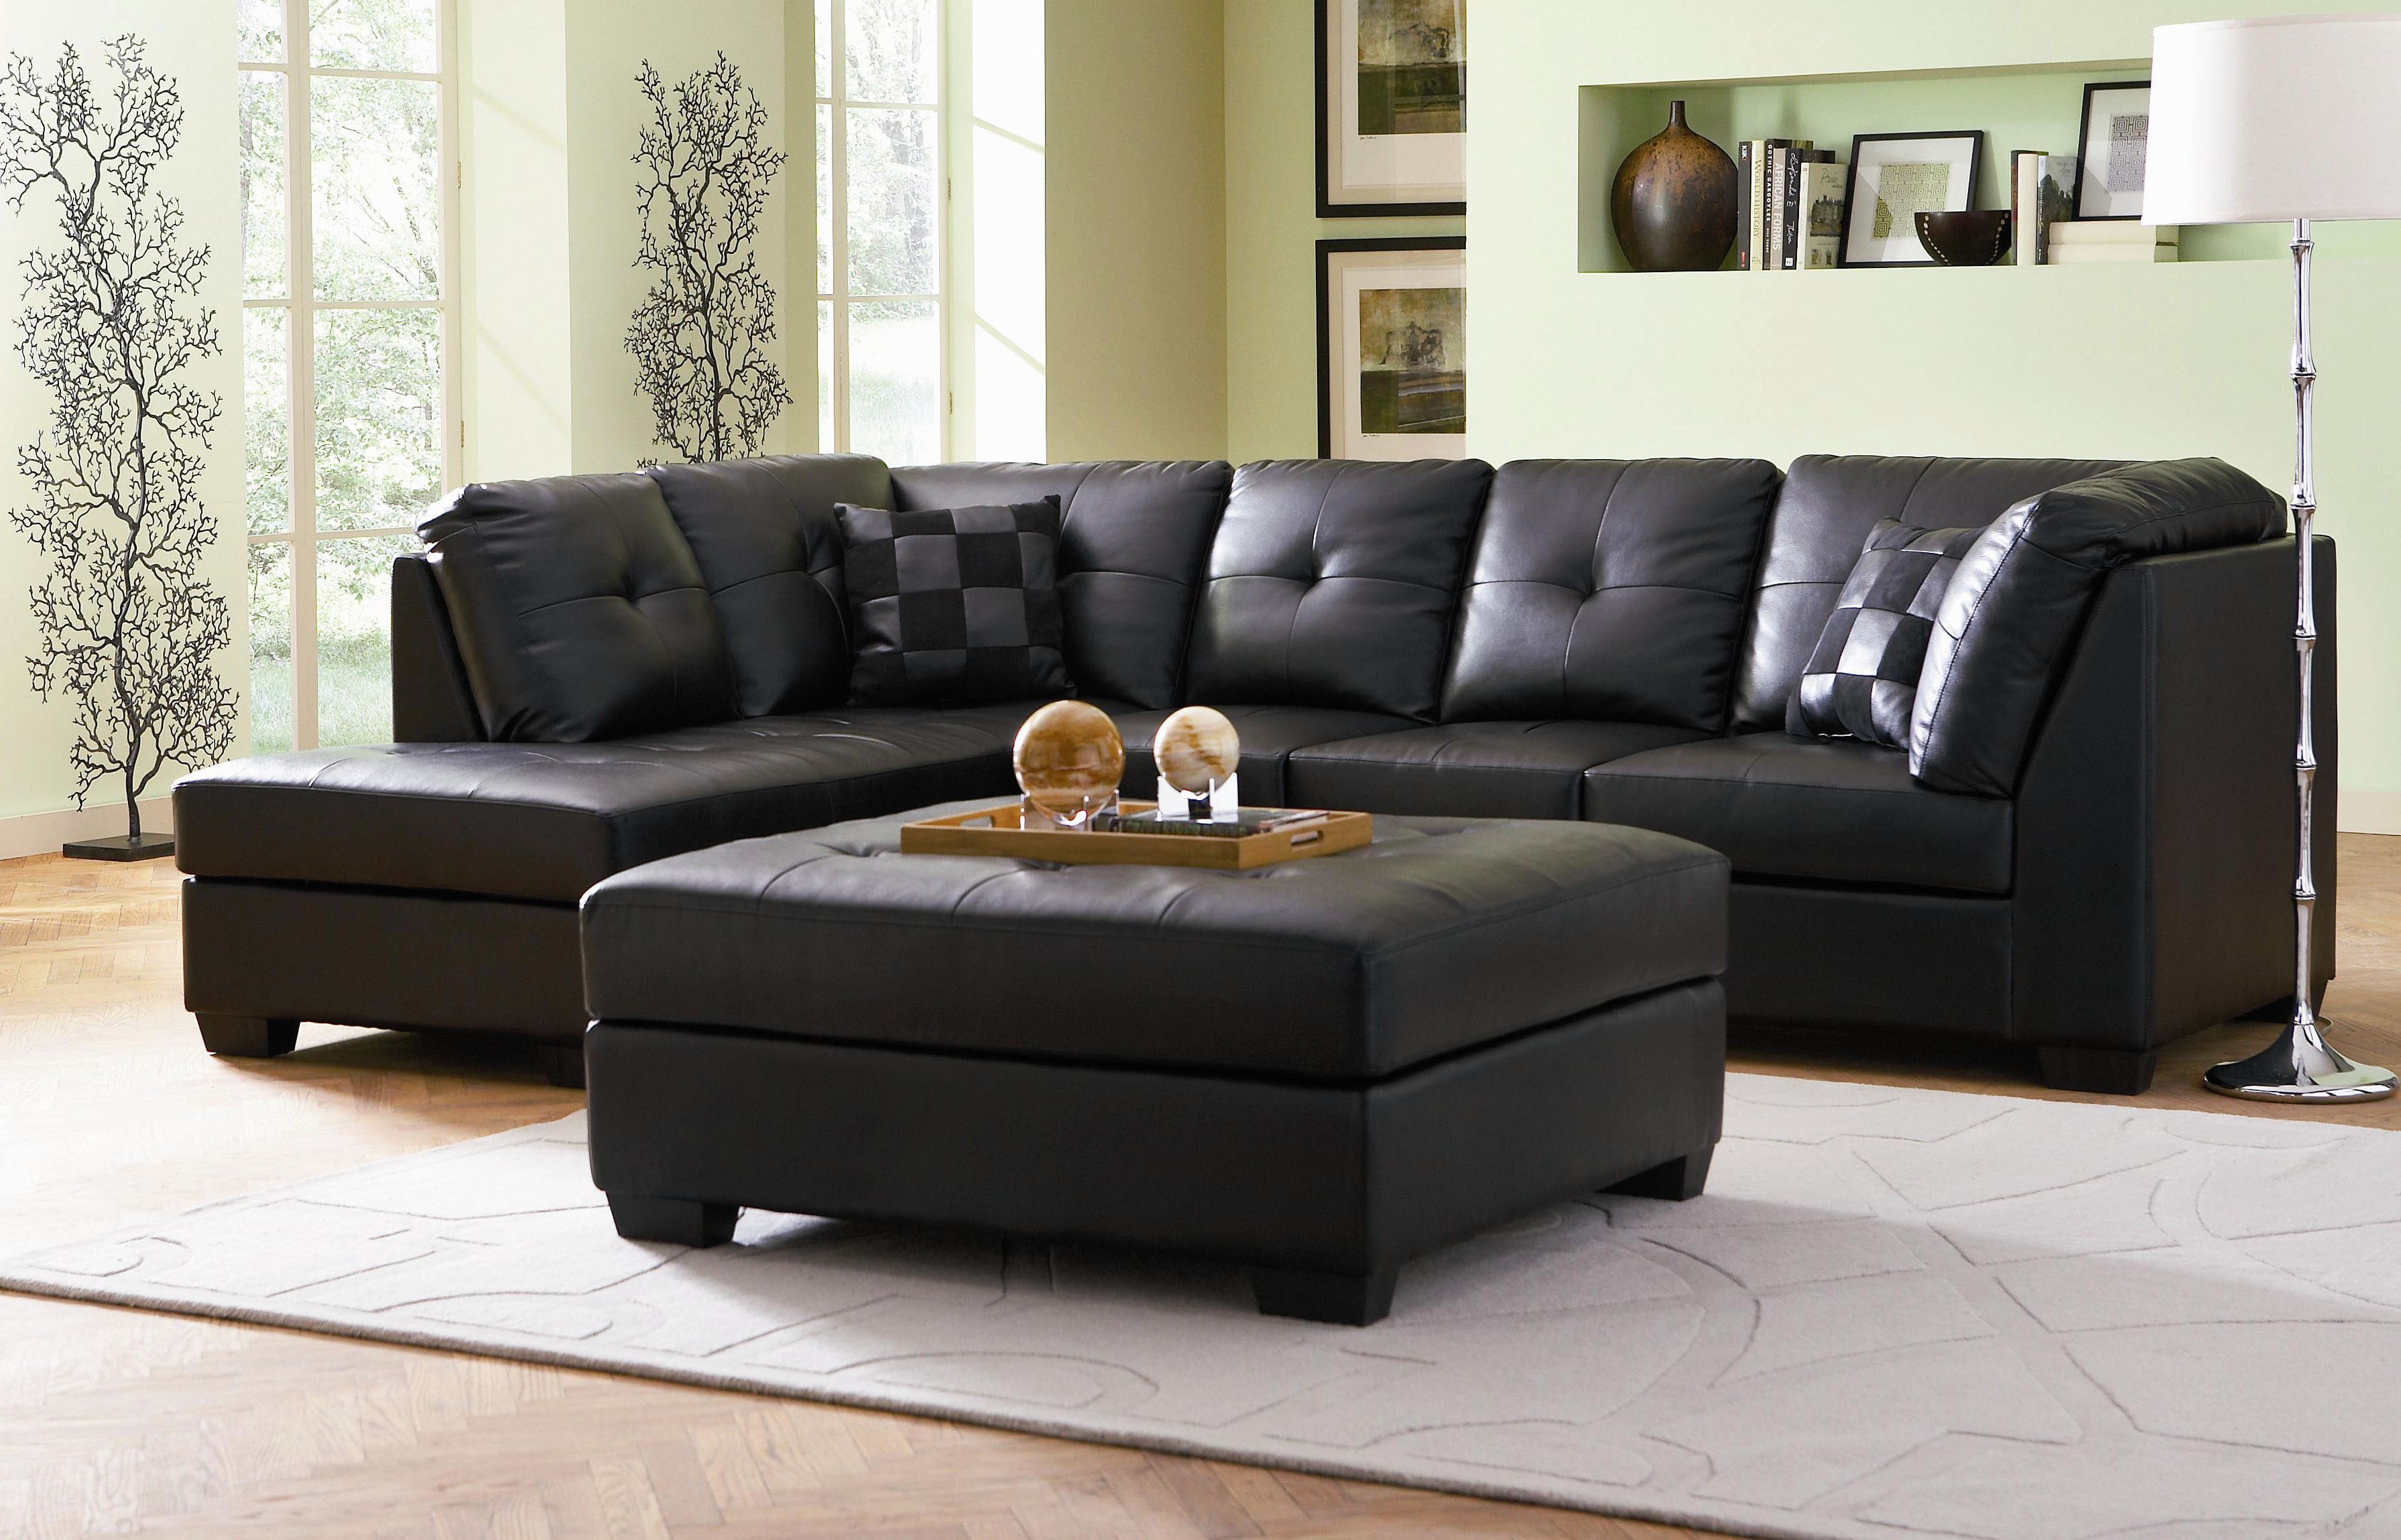 Cool black leather sectional for elegant living room design with black leather sectional sofa